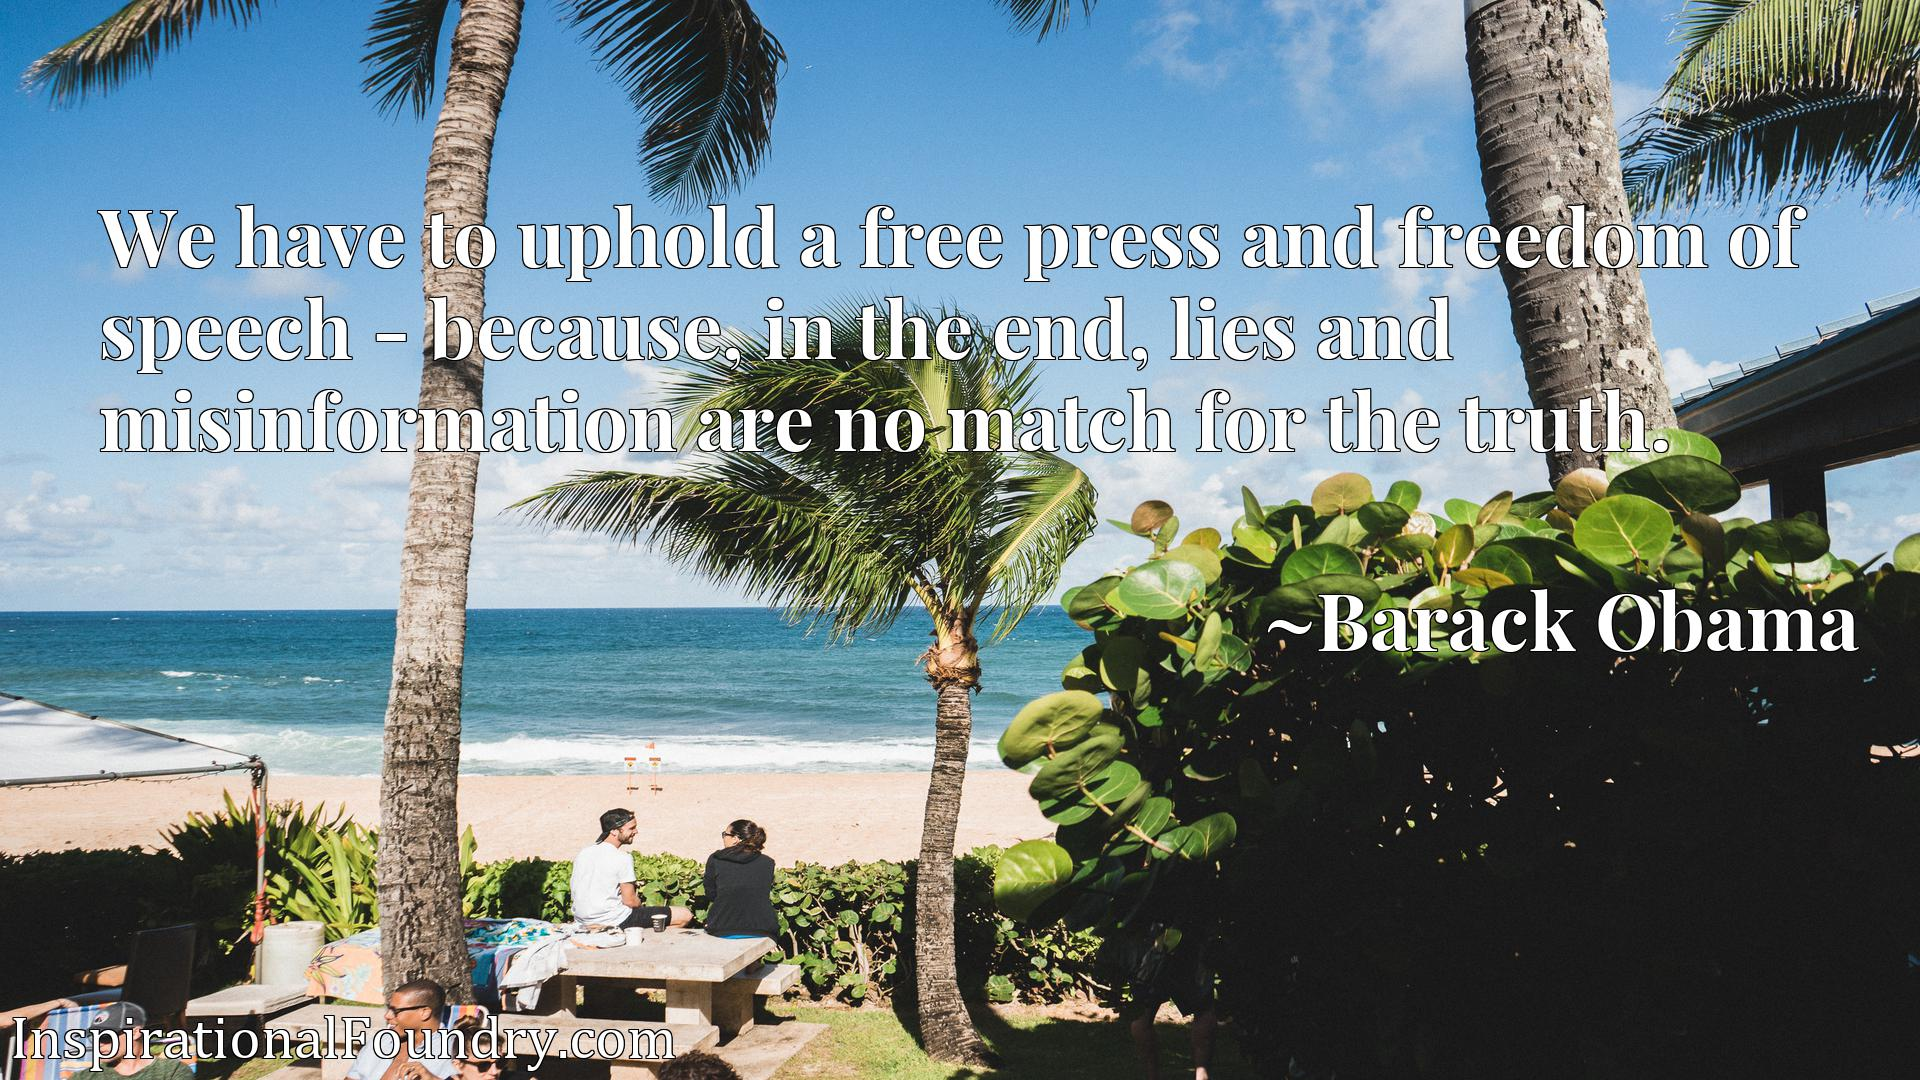 Quote Picture :We have to uphold a free press and freedom of speech - because, in the end, lies and misinformation are no match for the truth.